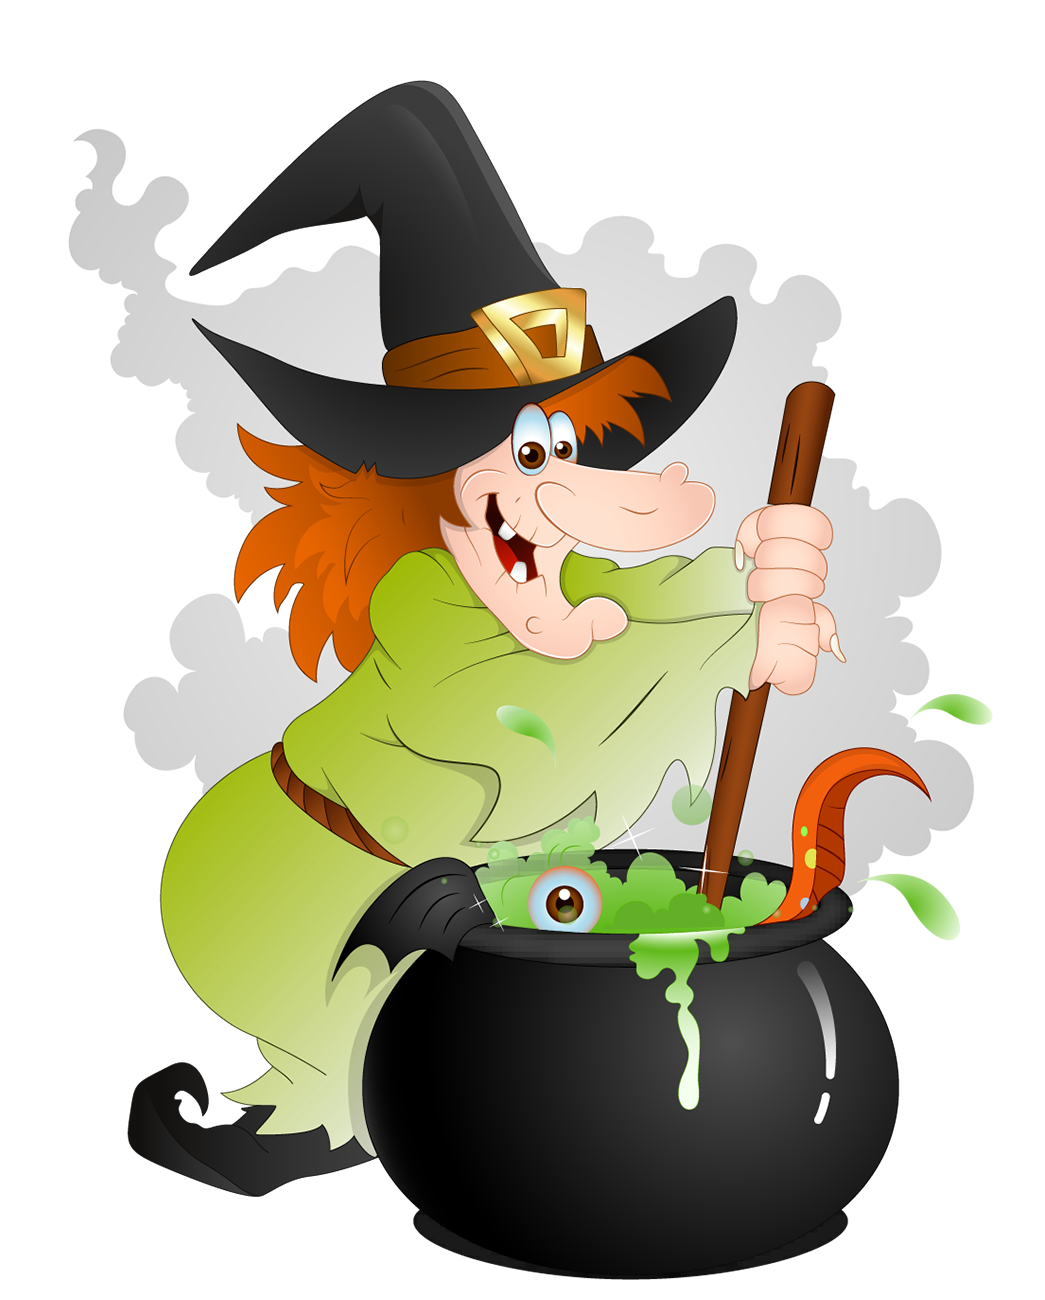 Halloween potion clipart clip royalty free stock Halloween čarodějnice kliparty elognvrdnscom | Čarodějnice ... clip royalty free stock